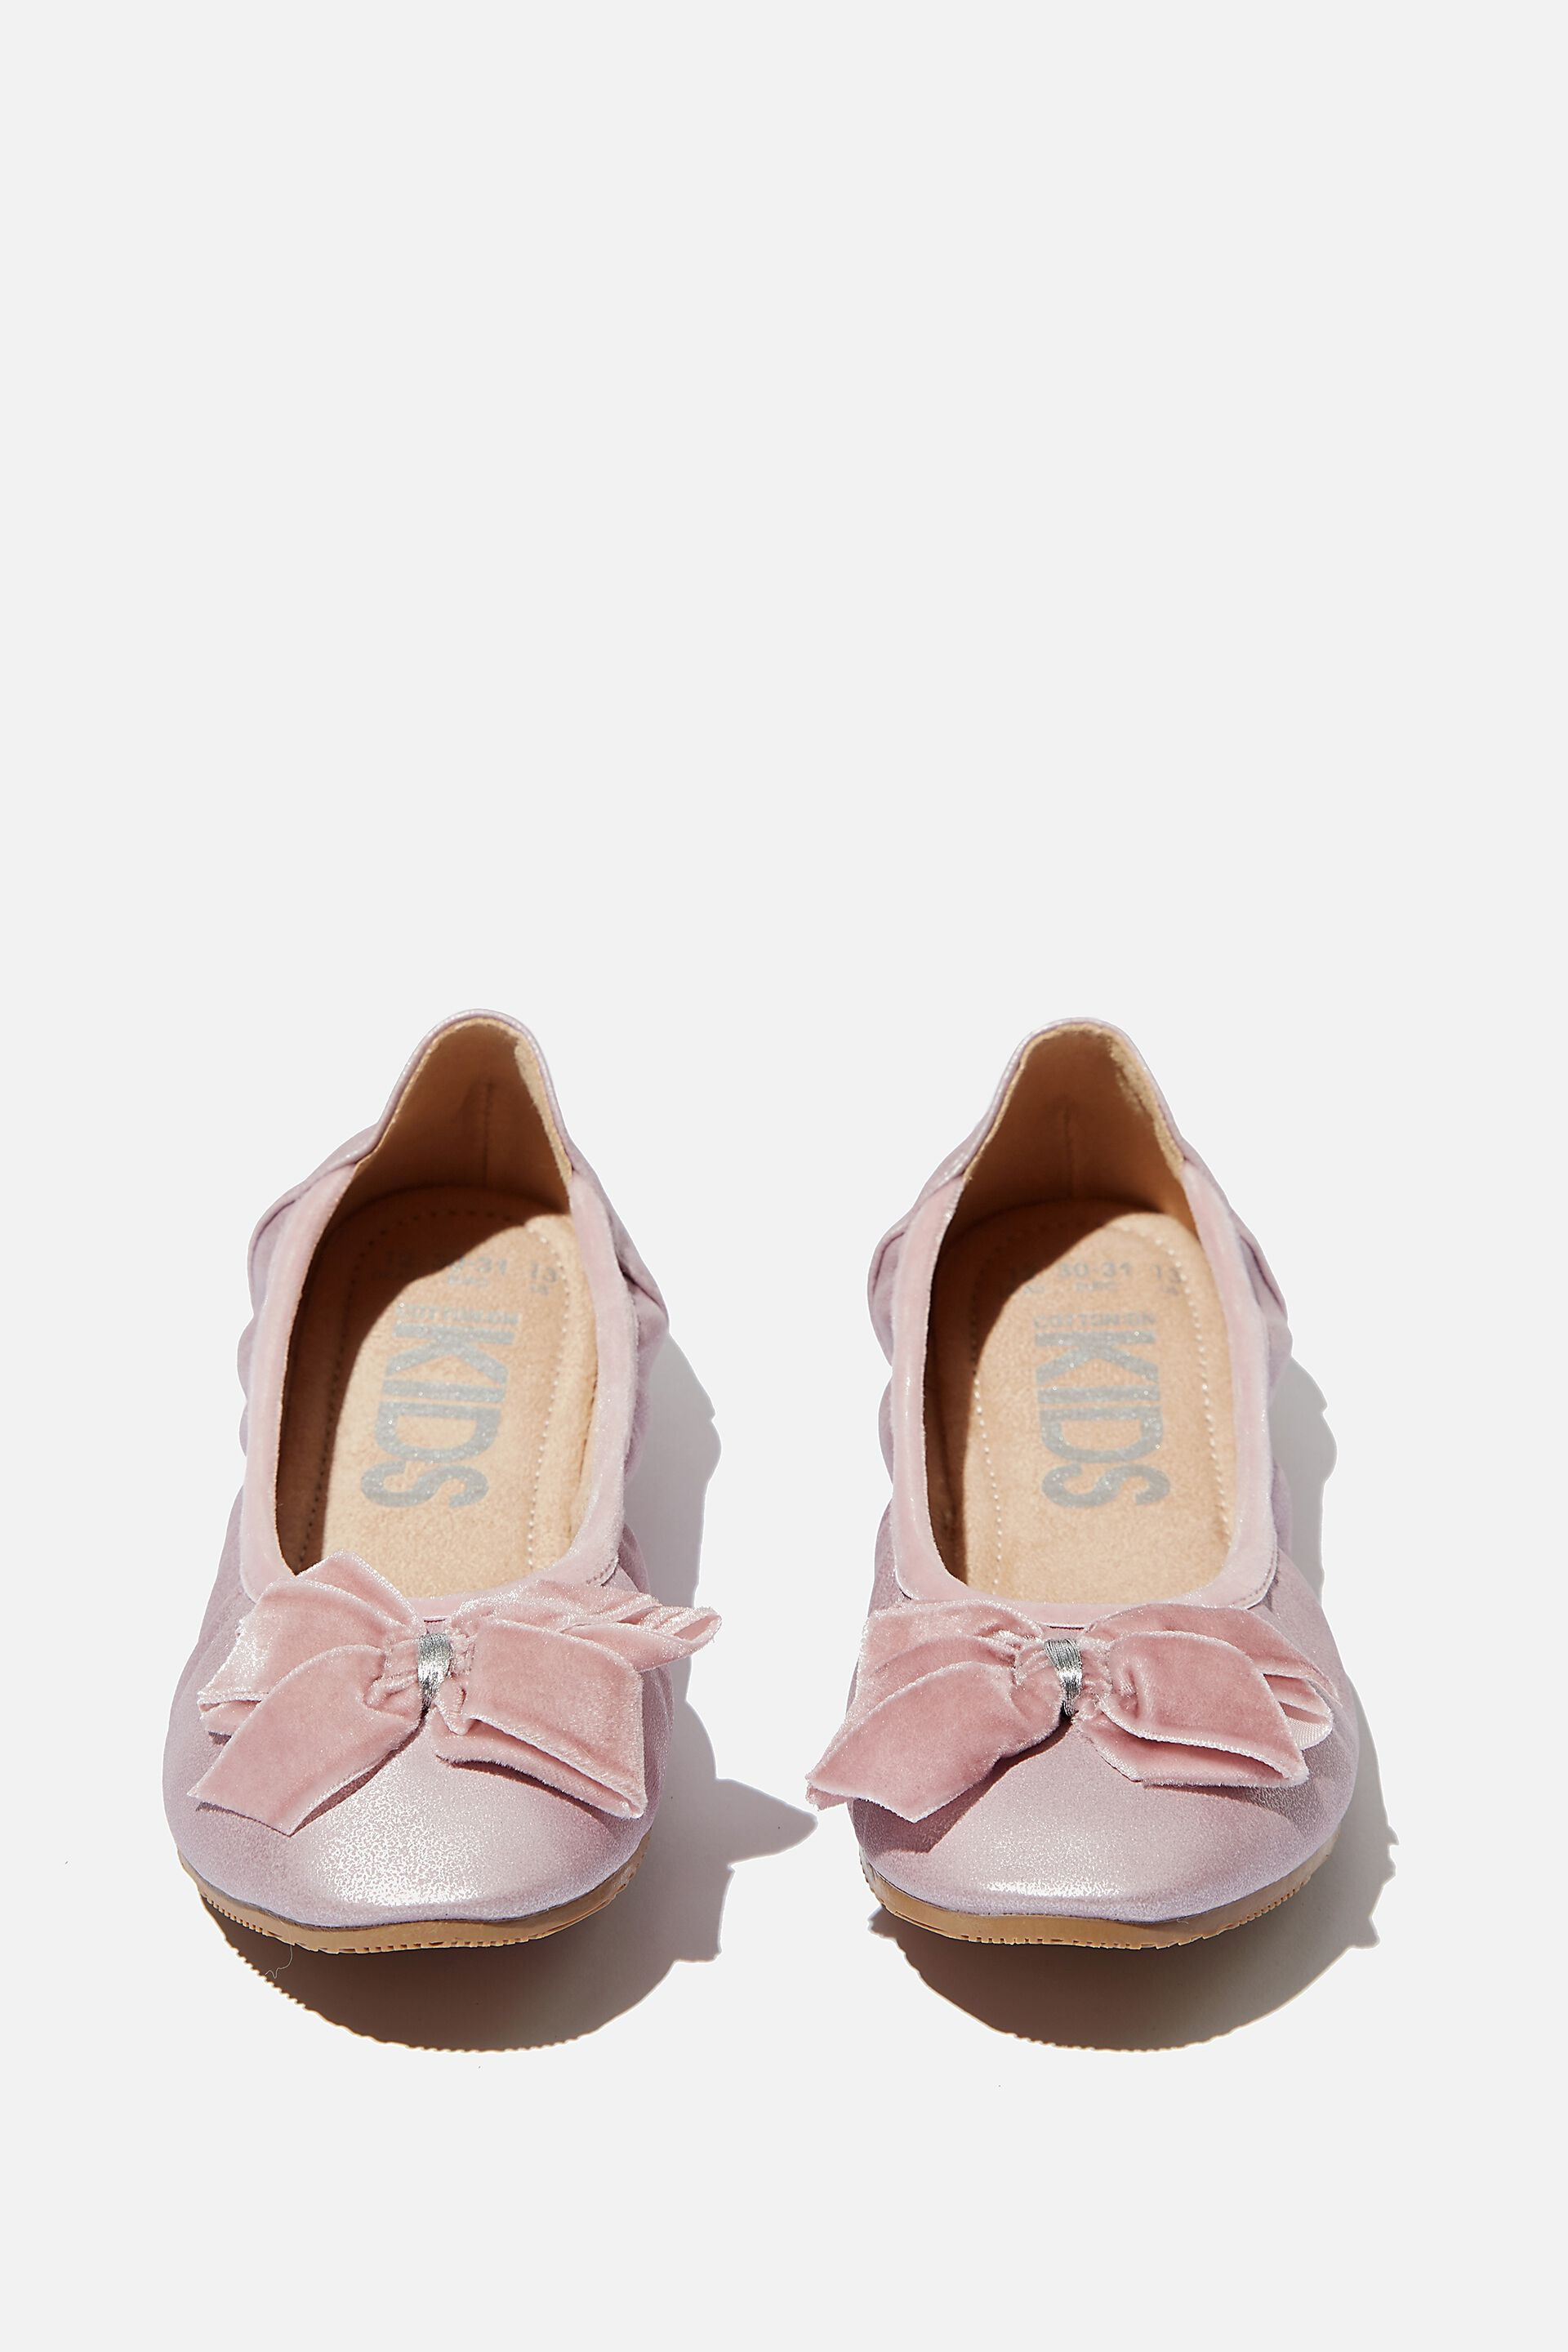 Primo Ballet Flat | Baby Clothes, Kids